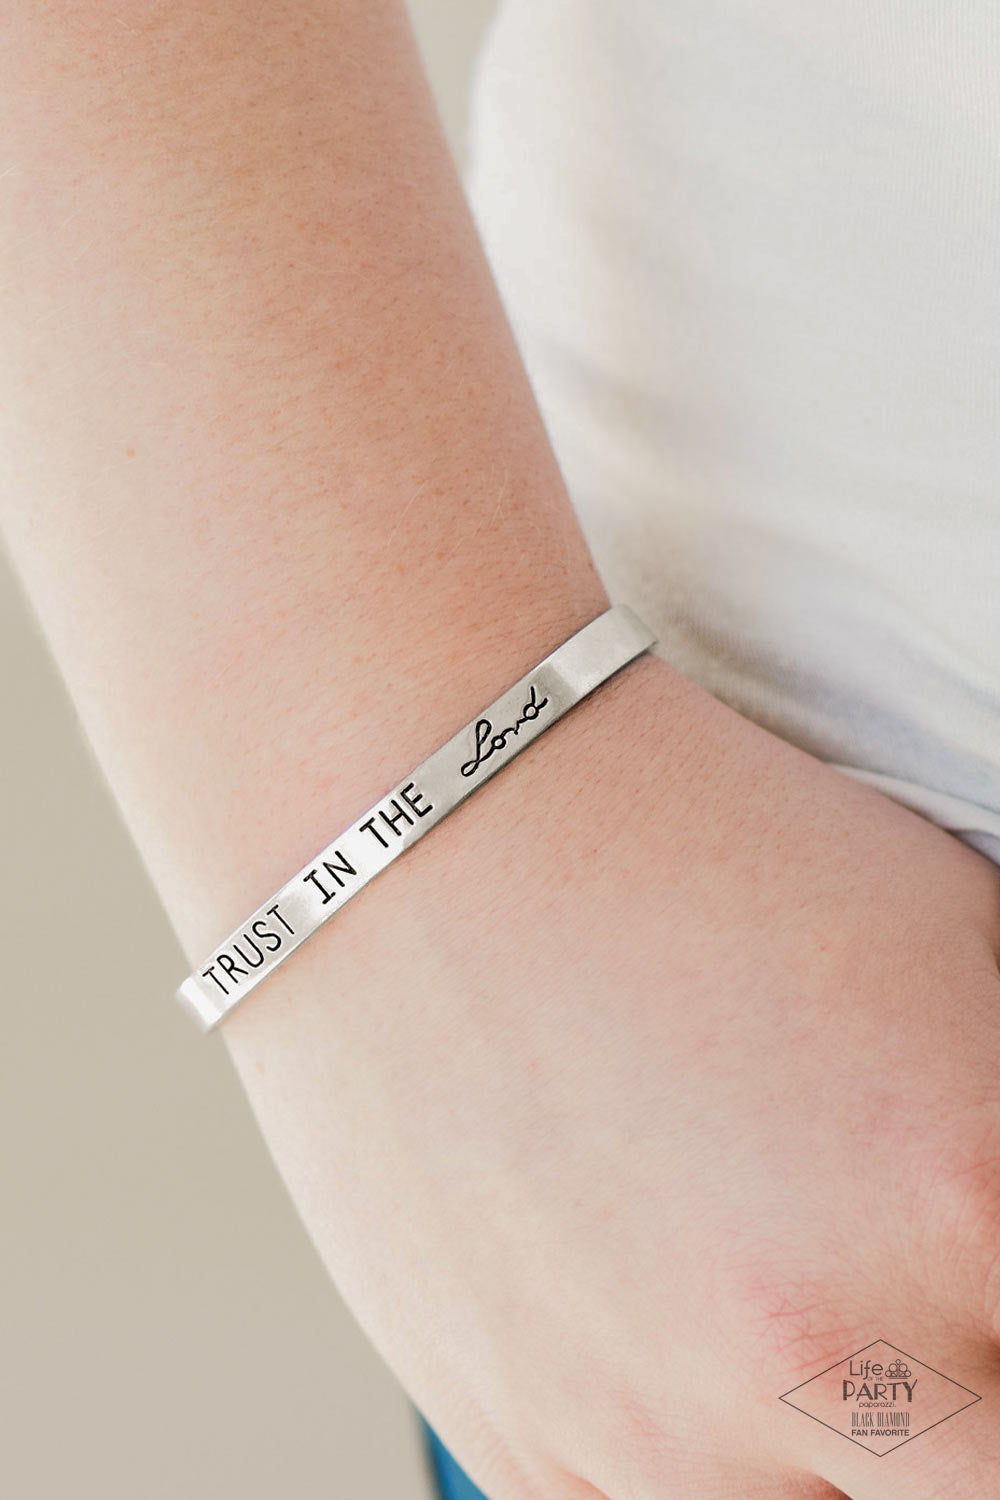 I Put My Trust In You - Silver Bracelet 1612B